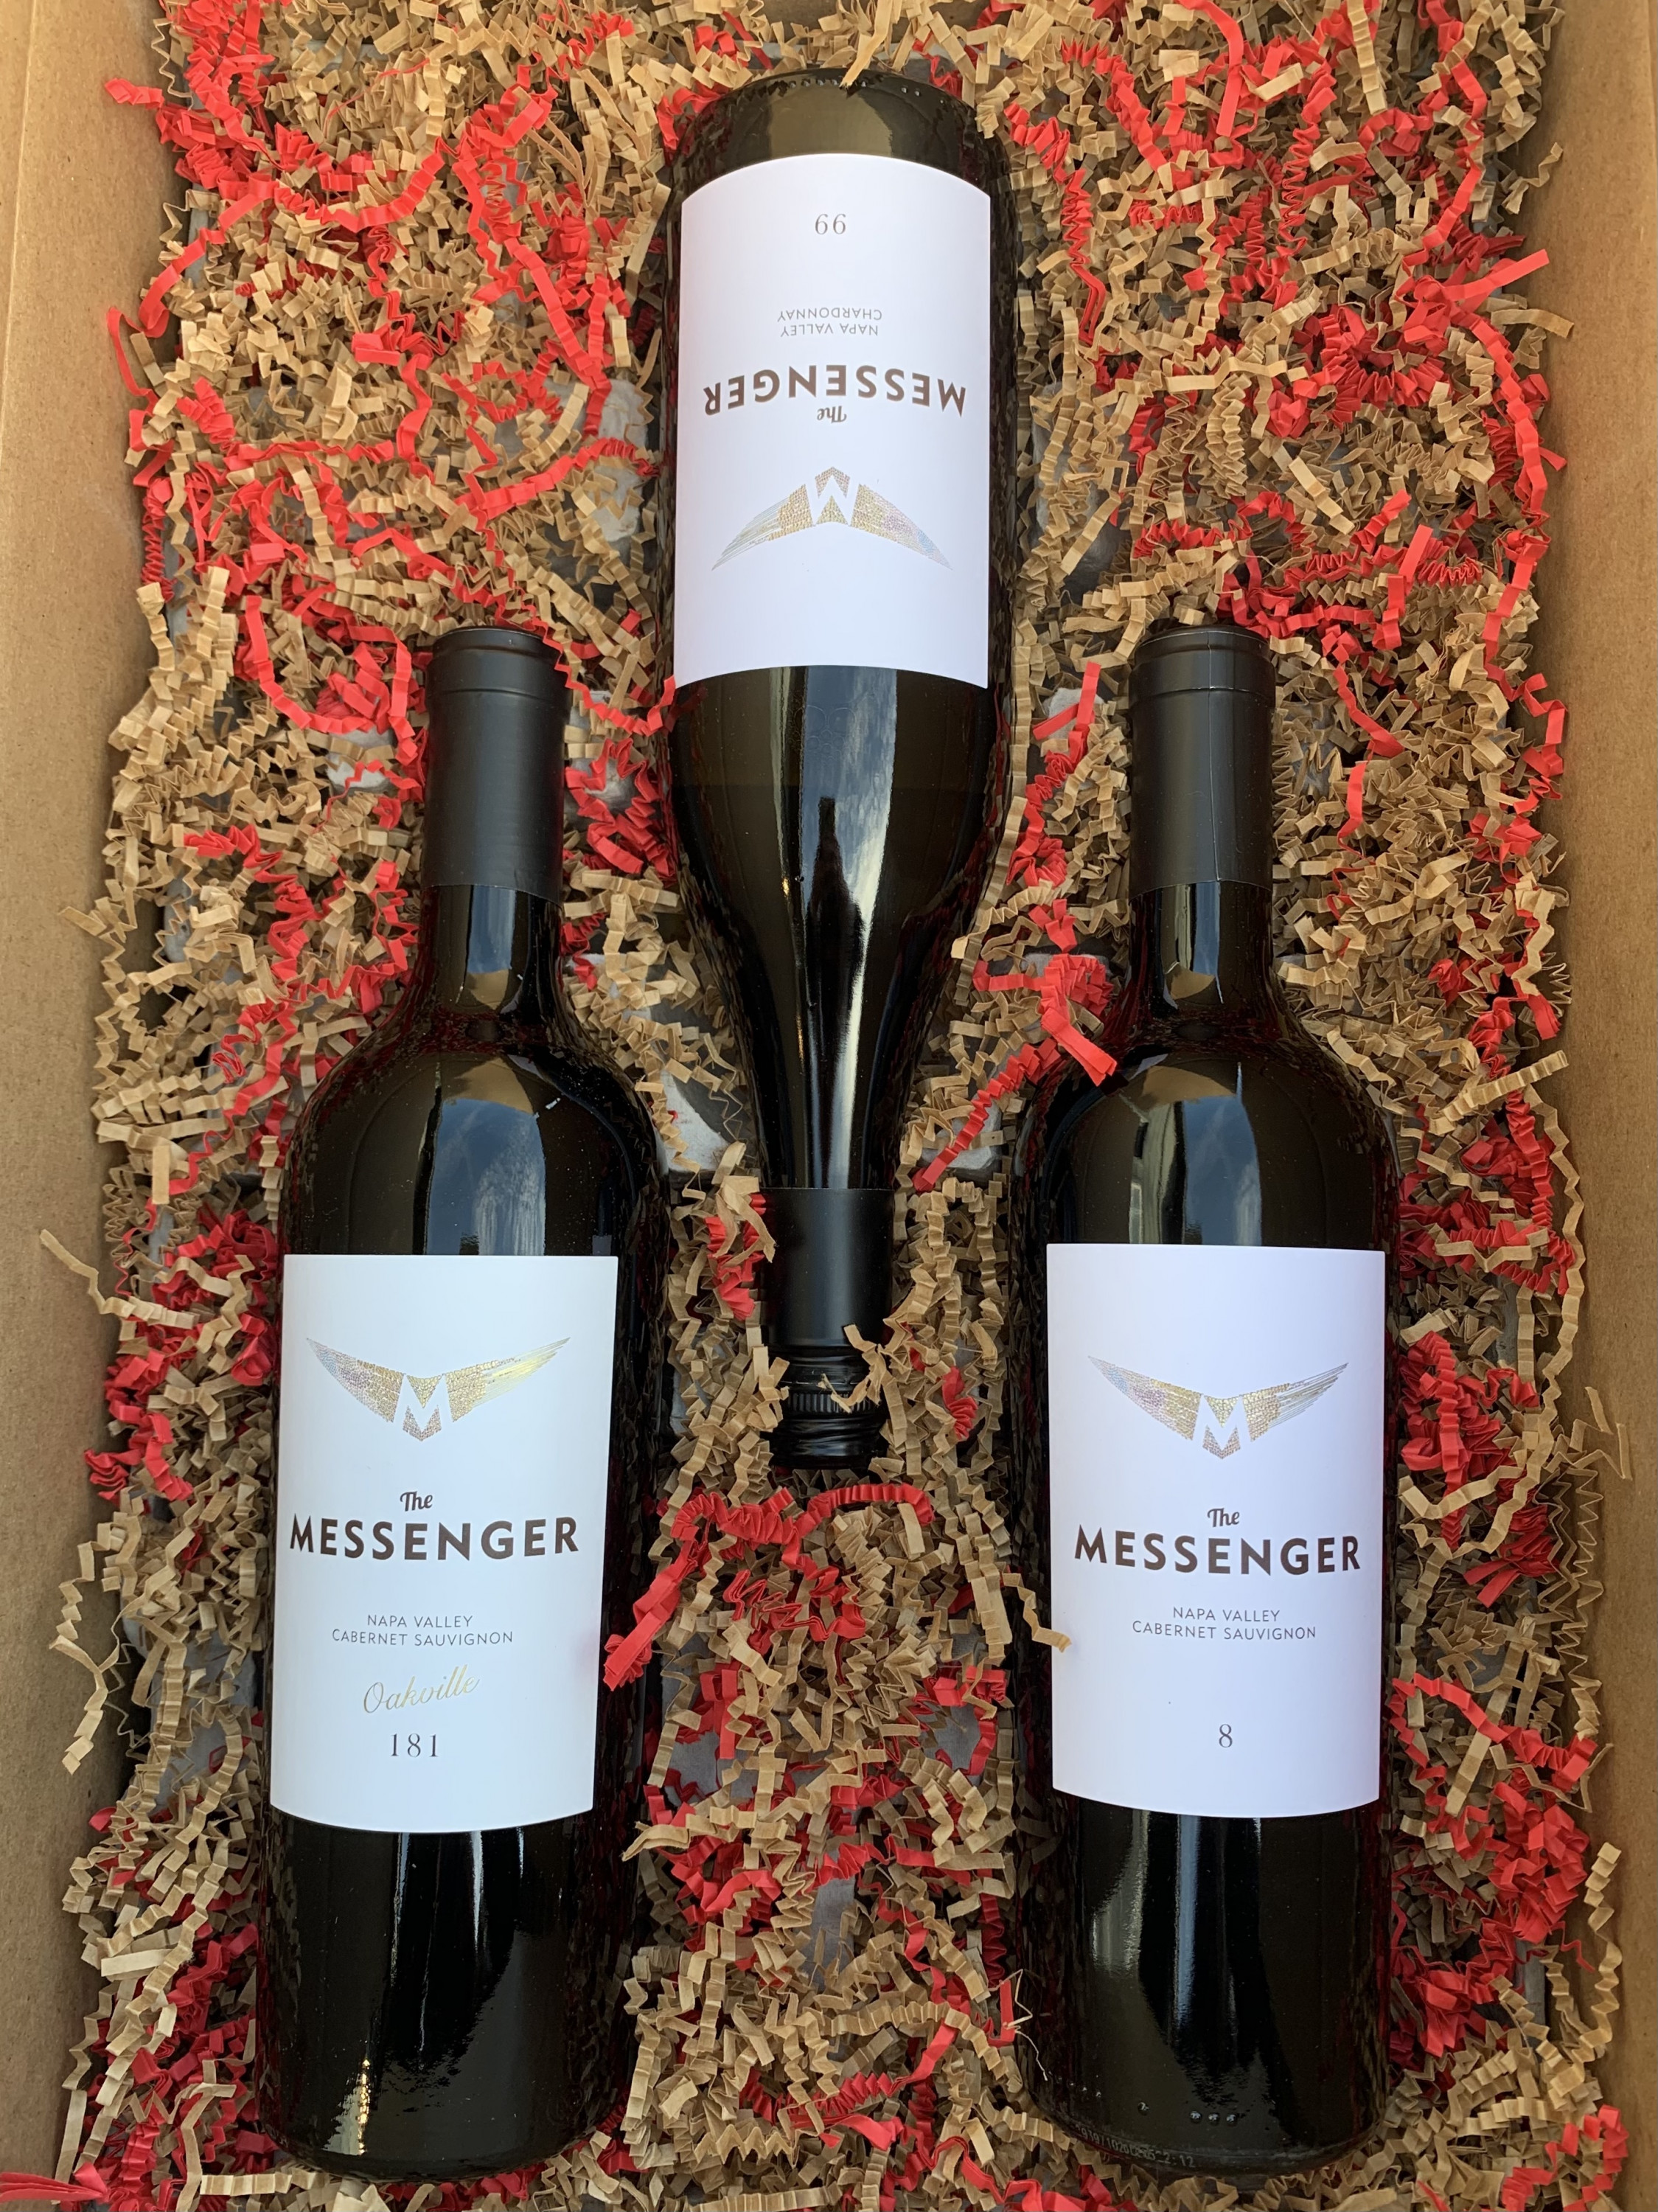 The Messenger 2018 Vintage 6pack 6x750ml The Messenger Napa Valley Wines - Art+Farm Wine